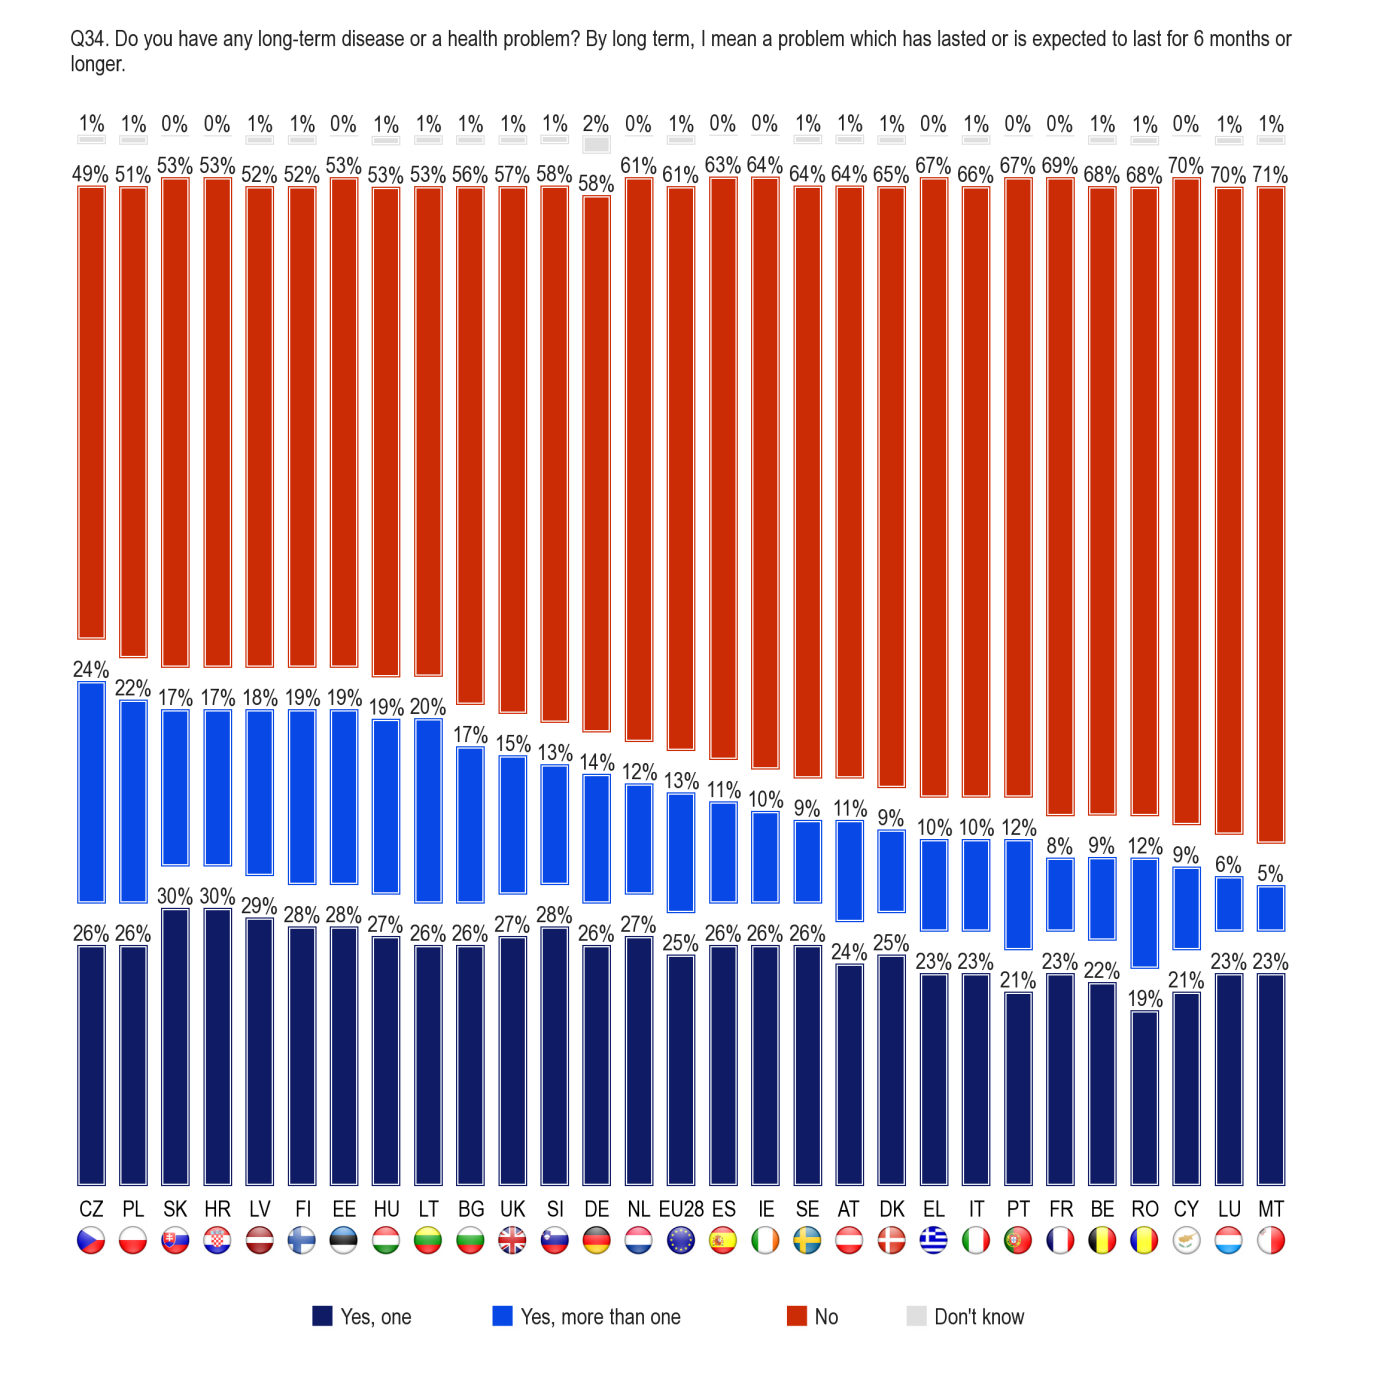 FLASH EUROBAROMETER In 13 countries, at least four out of ten respondents say that they have at least one longterm health problem.